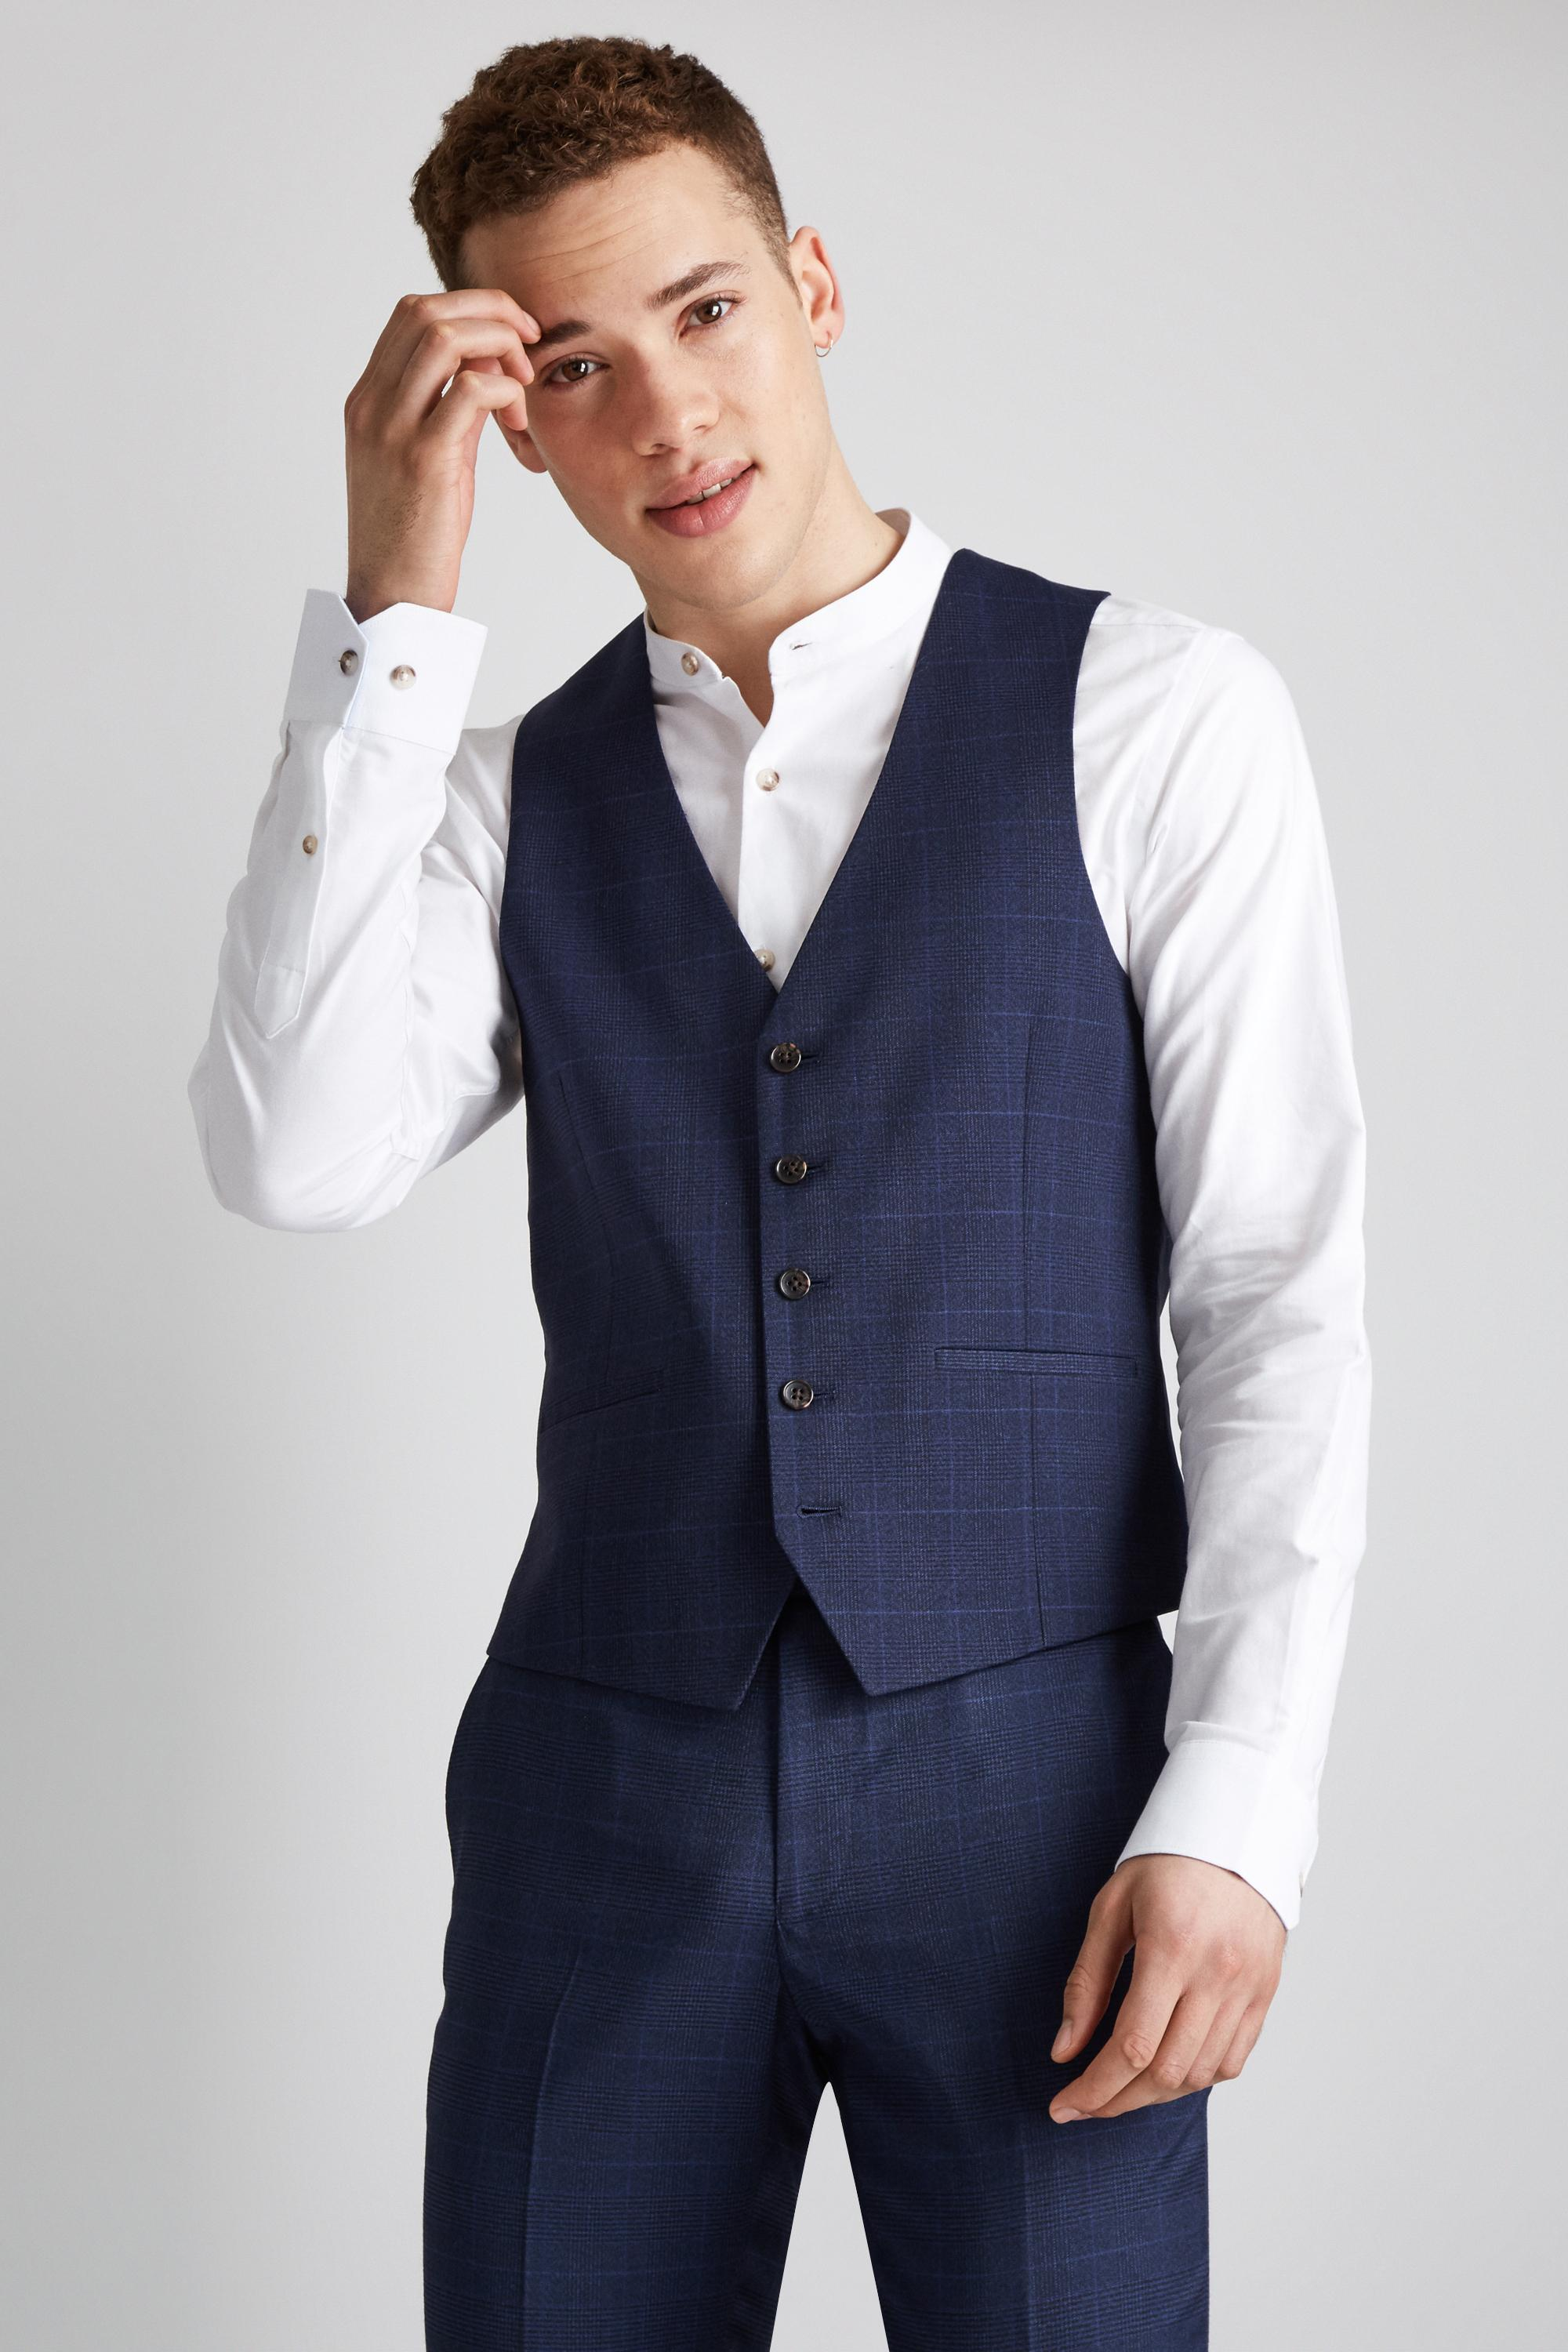 74aaa966967d83 Lyst - Moss London Skinny Fit Unstructured Blue Check Waistcoat in ...